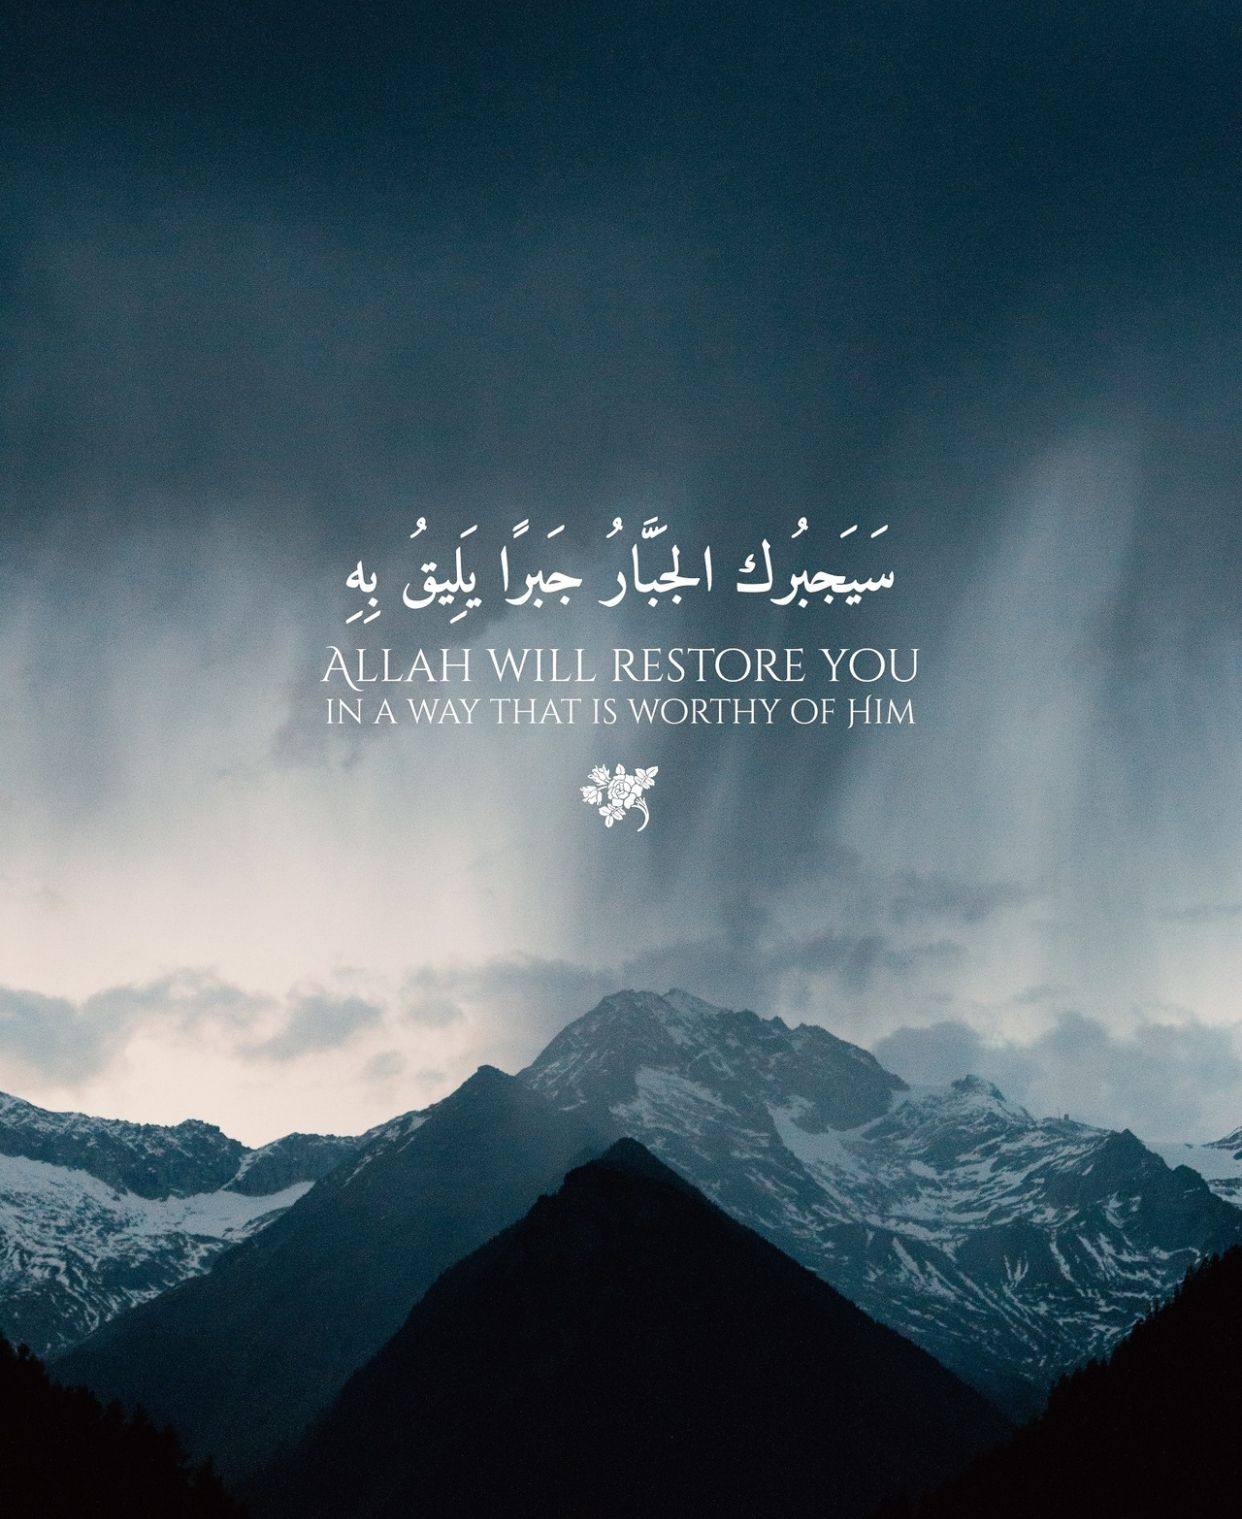 Pin By Fahad Baloch On Quran Verses Islamic Quotes Muslim Quotes Arabic Quotes Life Quotes